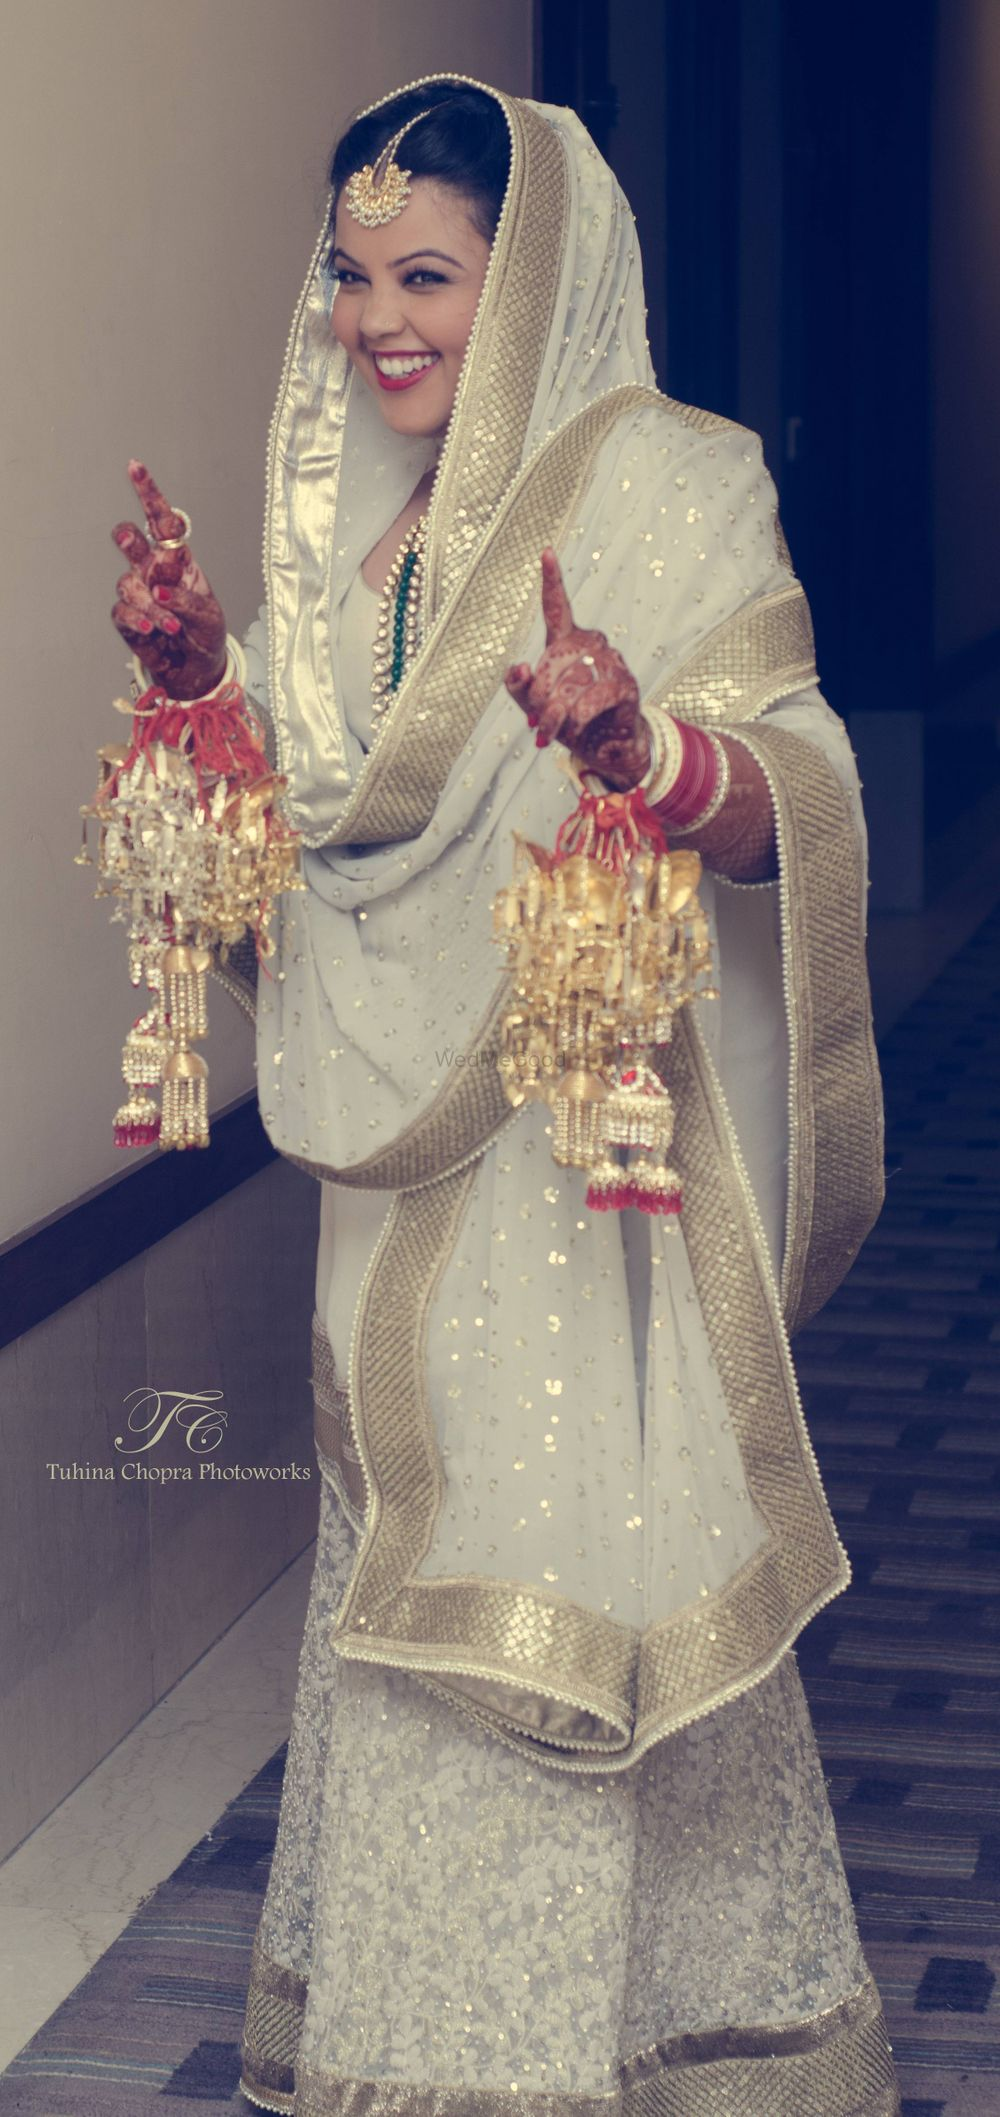 Photo From The bride is getting Pretty. - By Tuhina Chopra Photoworks